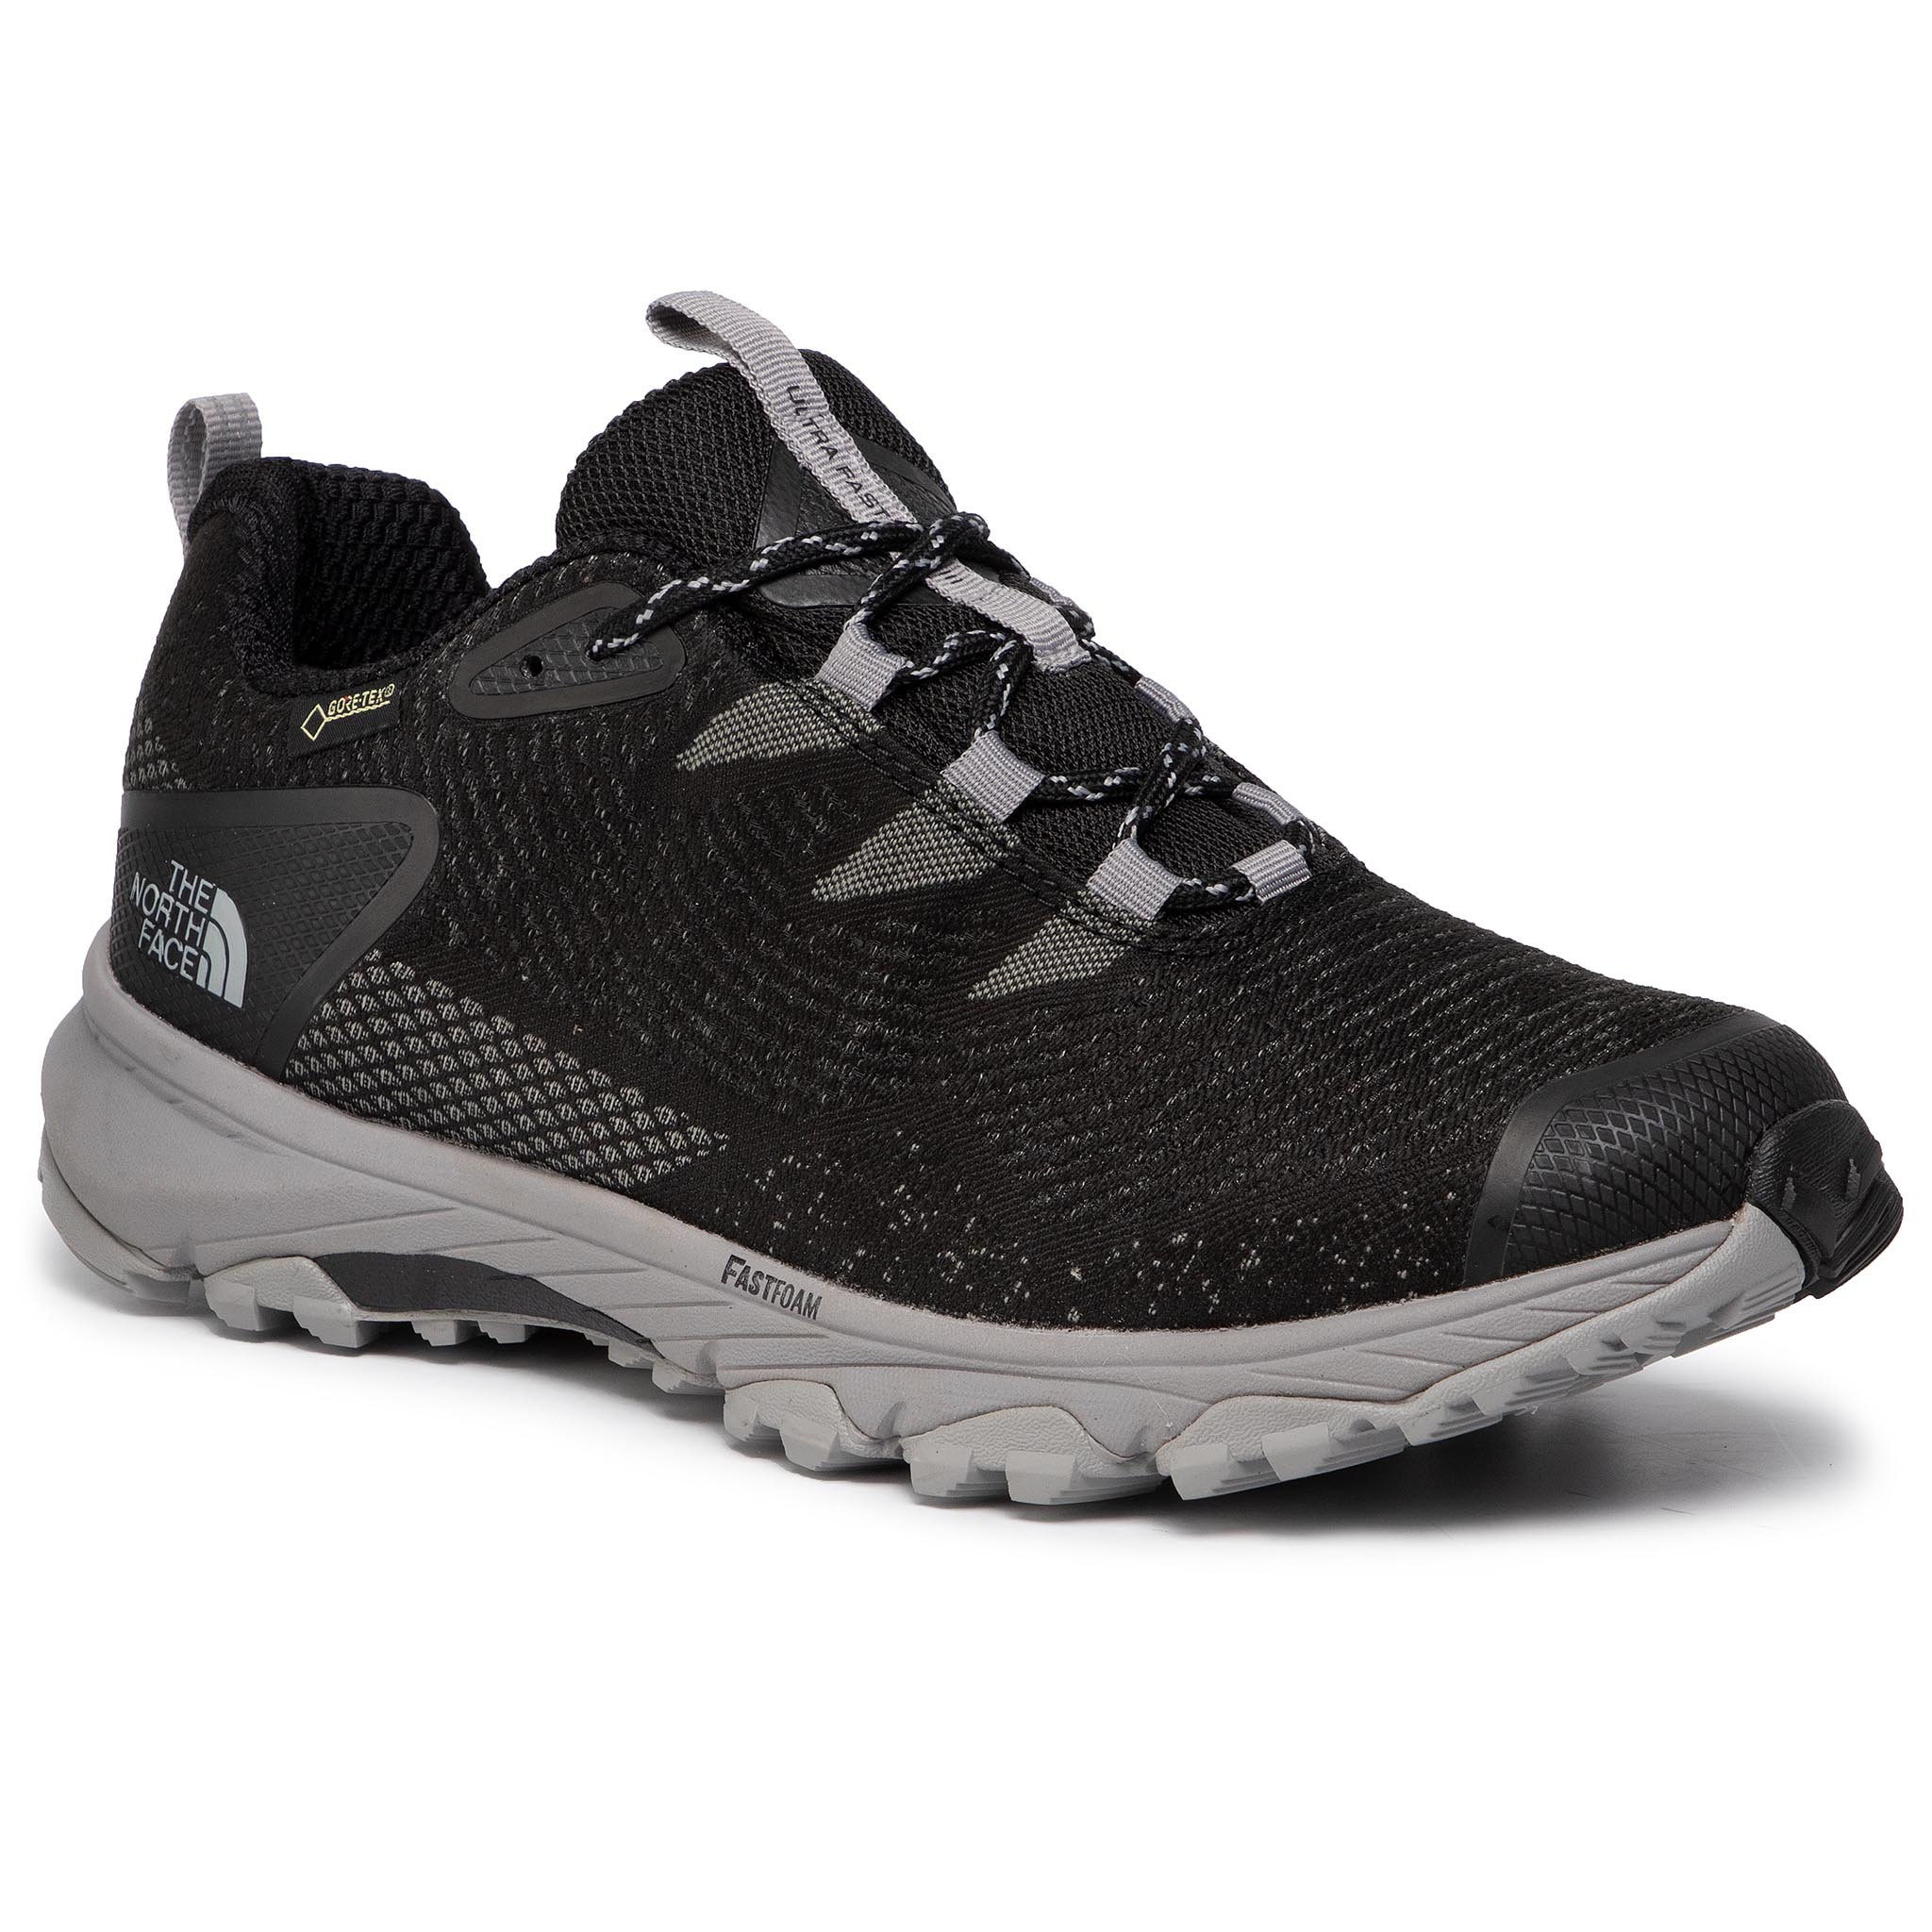 Batai THE NORTH FACE - Ultra Fastpack III Gtx (Woven) GORE-TEX T93MKWH23 Tnf Black/Meld Grey